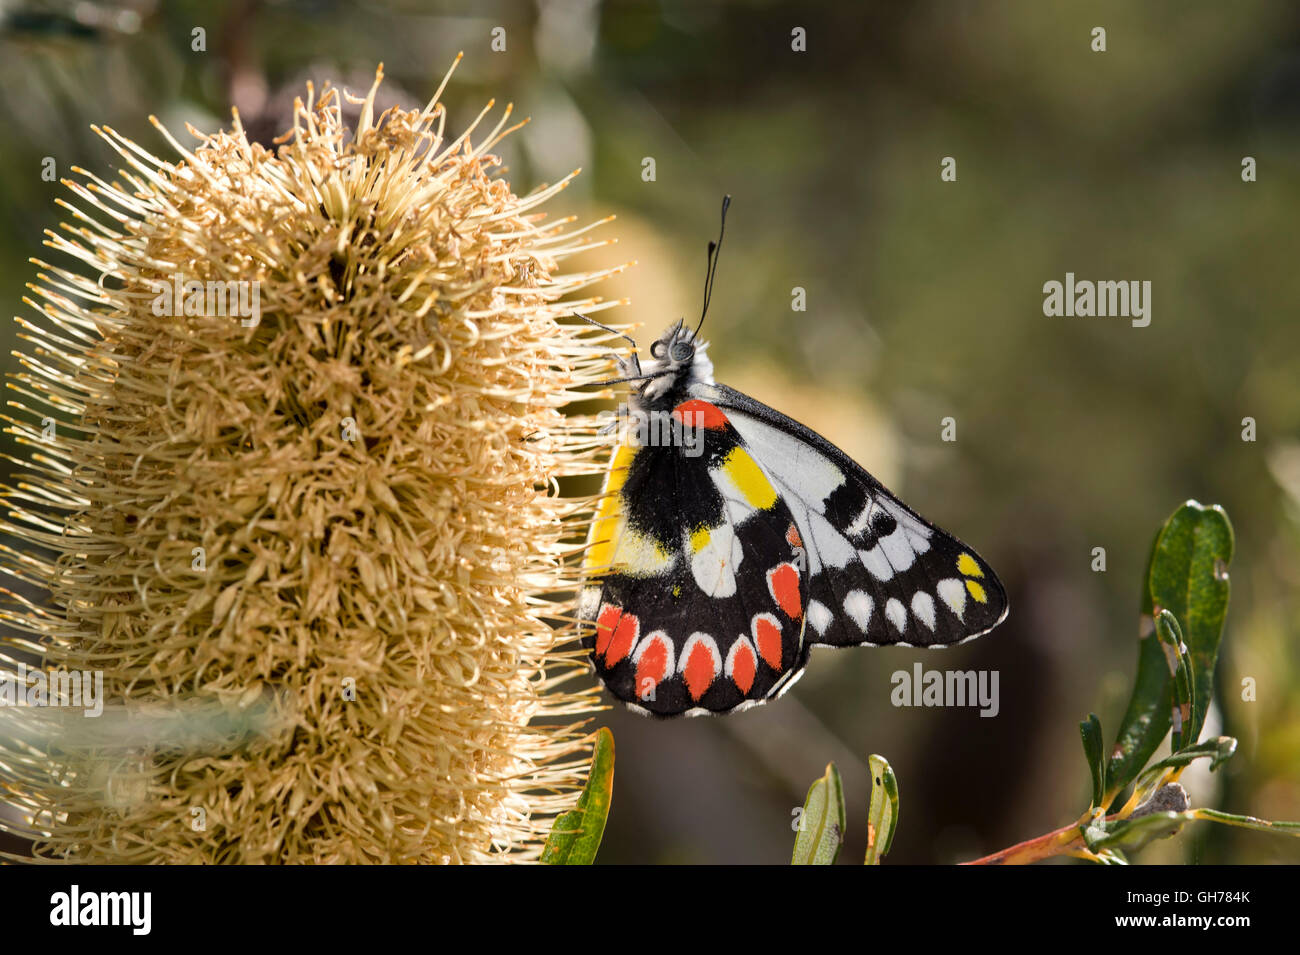 Spotted Jezebel Butterfly (Delias aganippe) feeding on Banksia flower - Stock Image